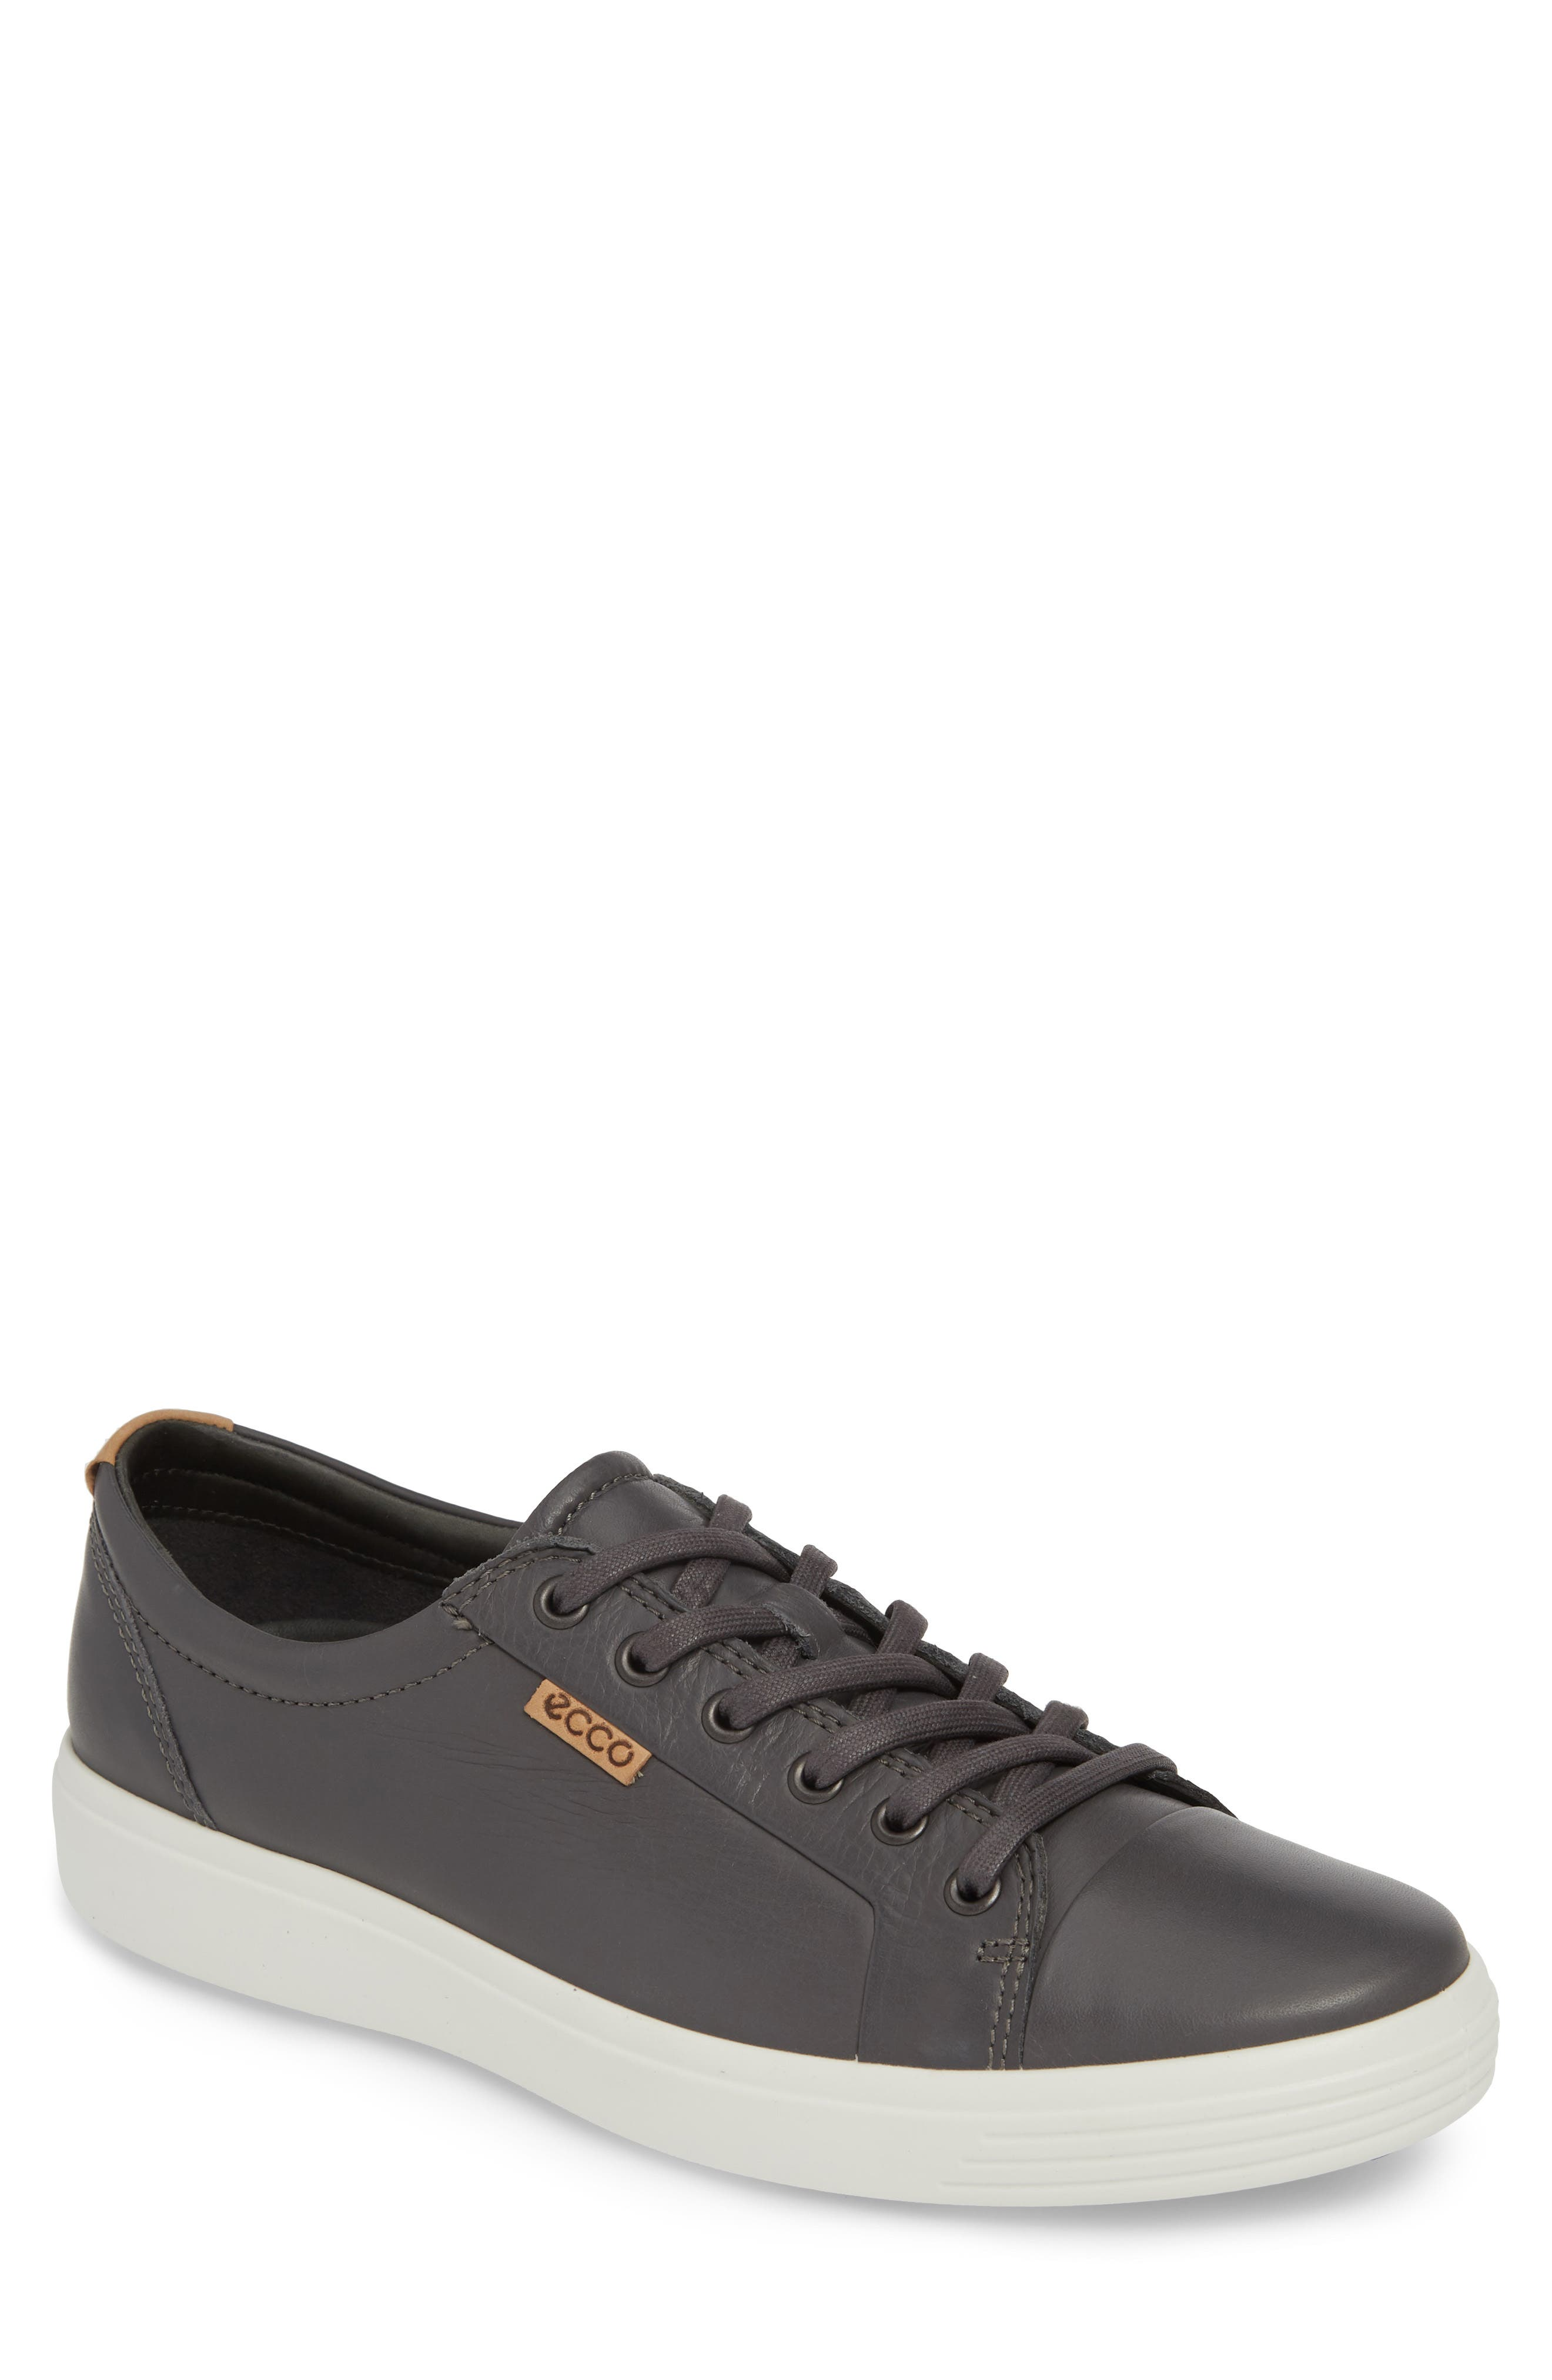 ECCO, Soft VII Lace-Up Sneaker, Main thumbnail 1, color, GREY DRAGO